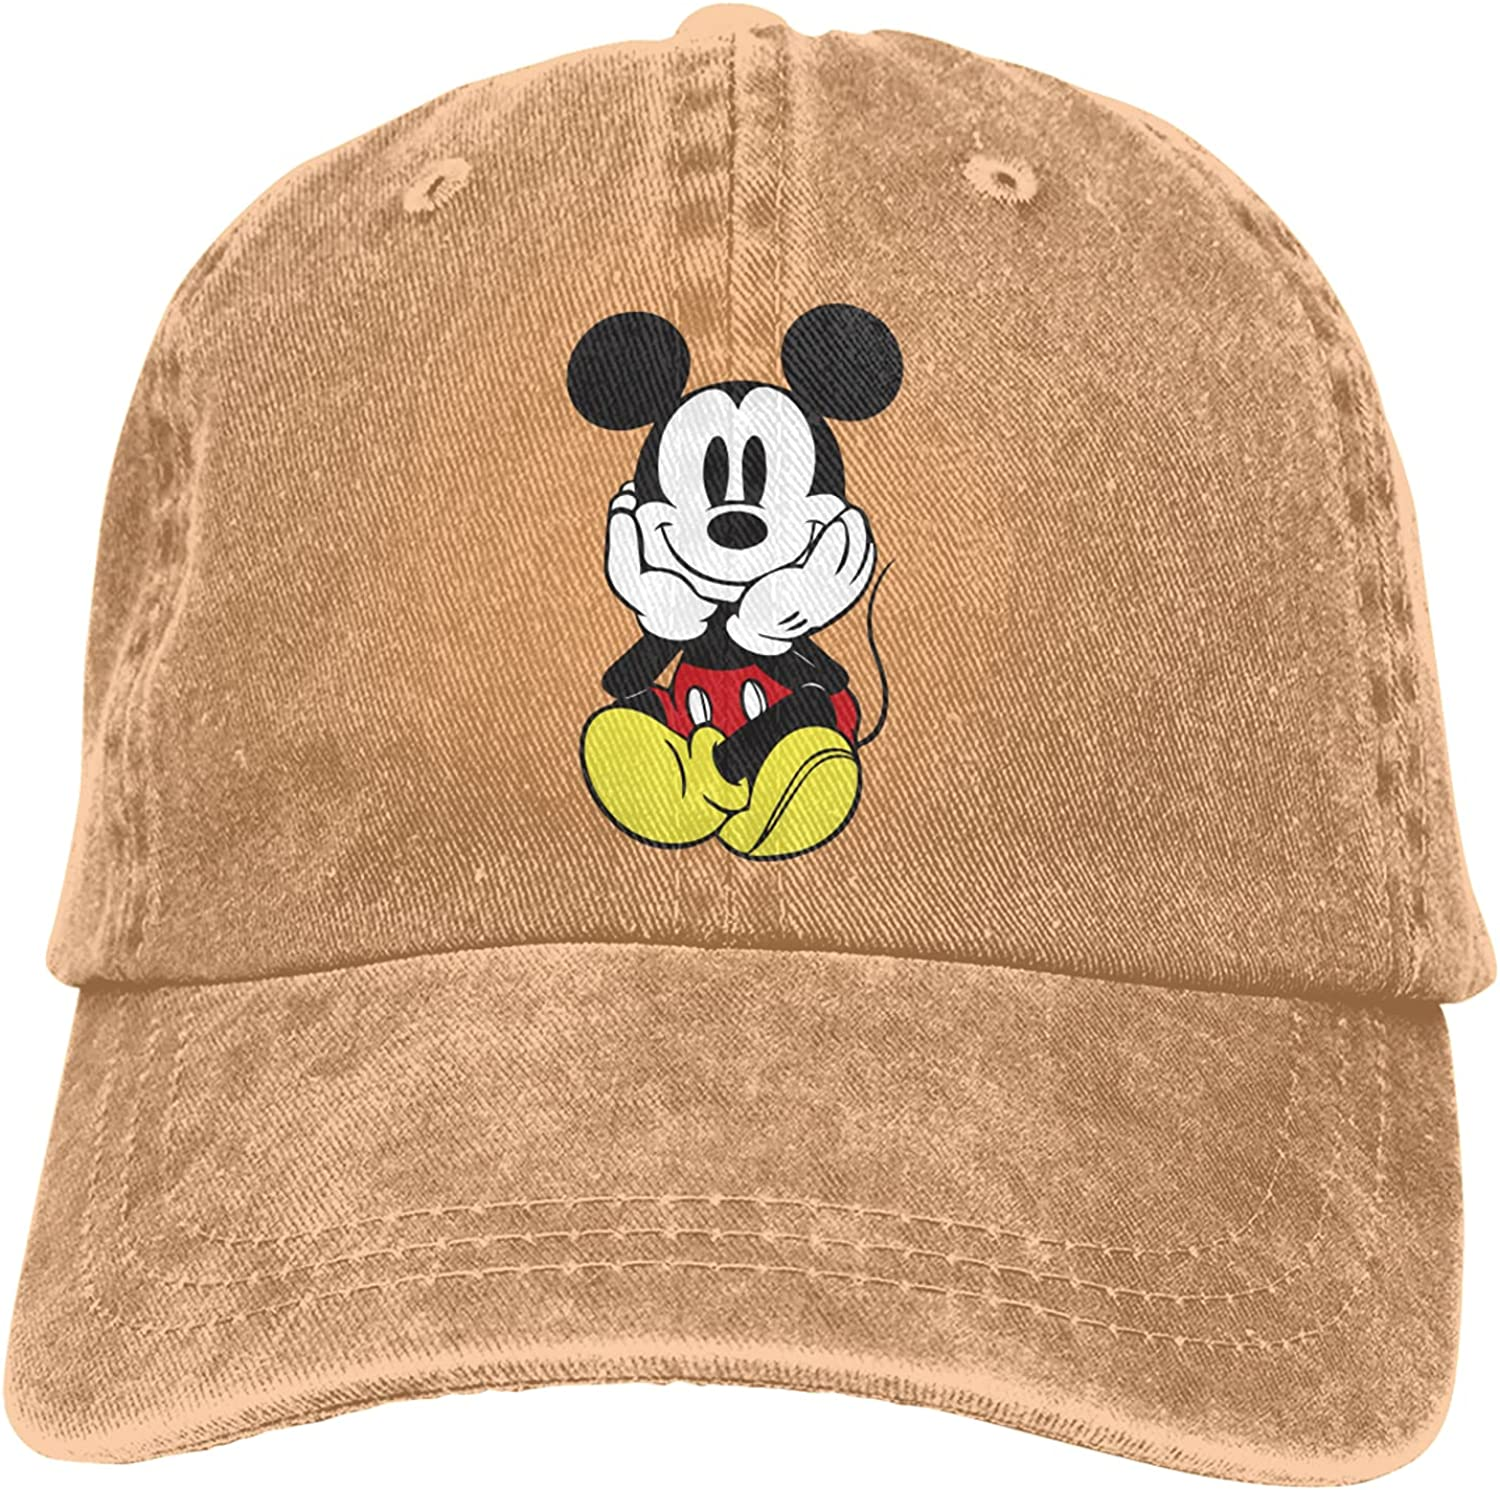 Mickey Mouse Unisex Baseball Cap Washed Vintage Denim Cotton Adjustable Polo Style Low Profile Dad Hat